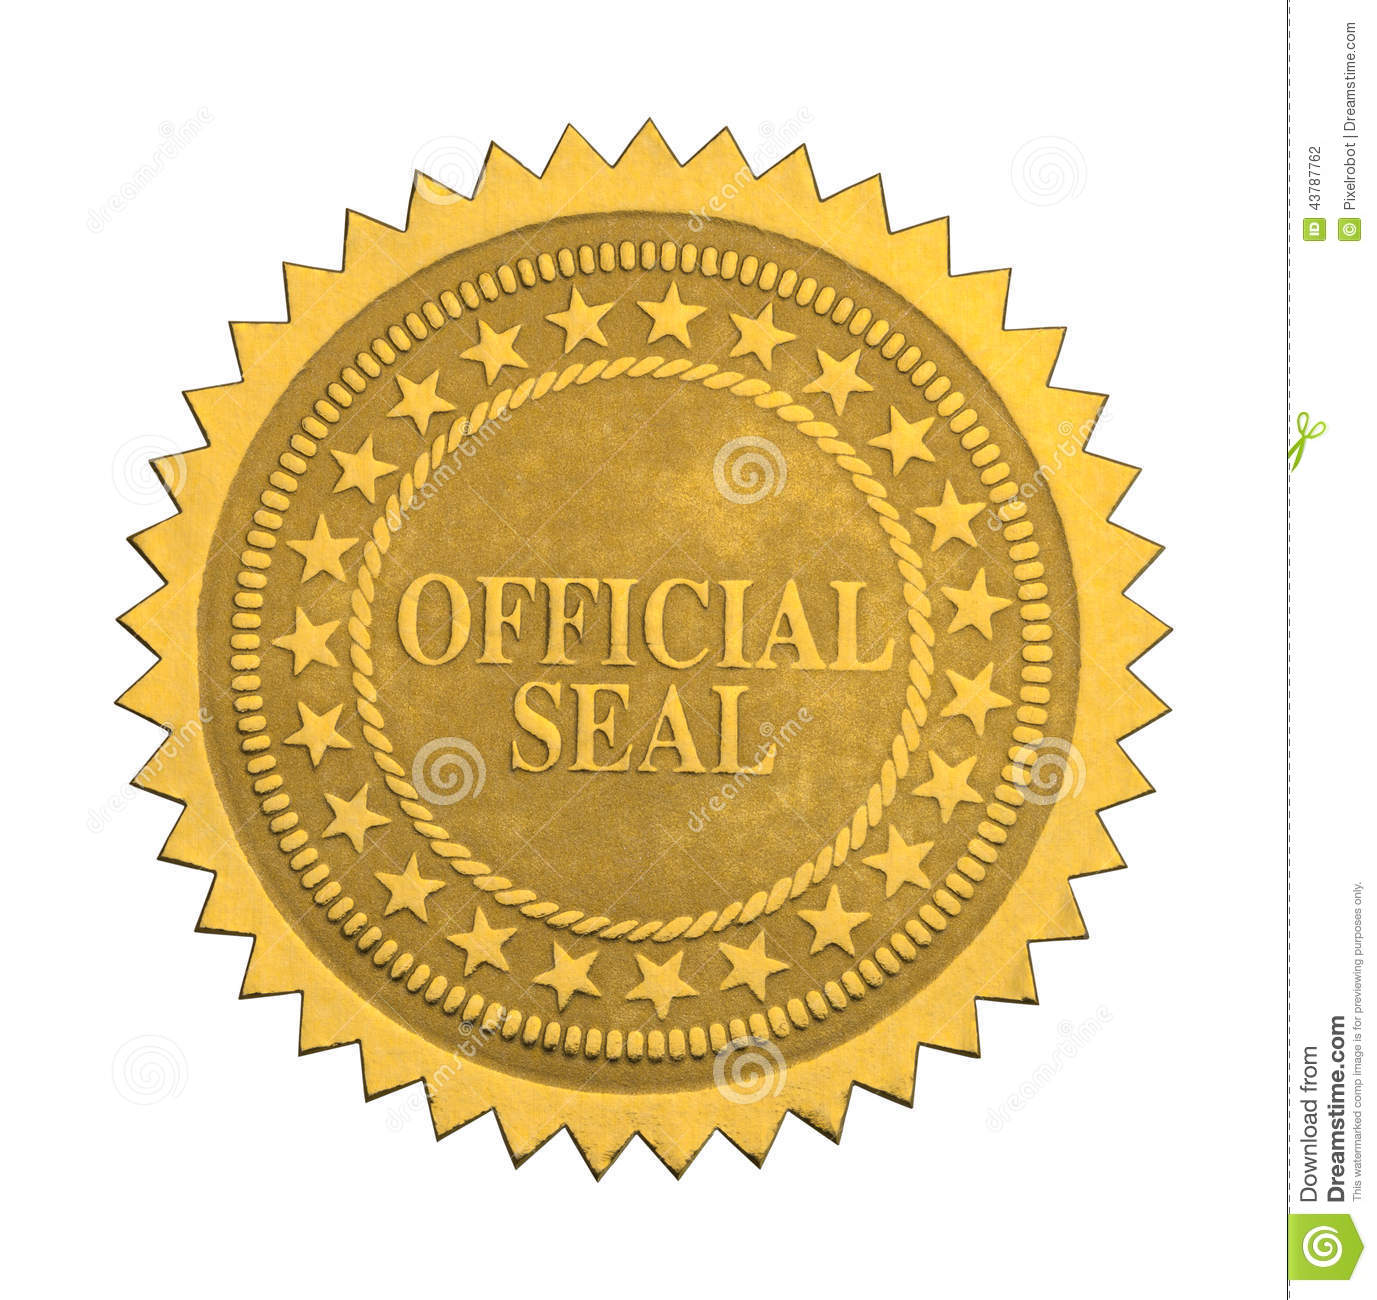 Ornate Gold Official Seal with Stars Isolated on White Background.